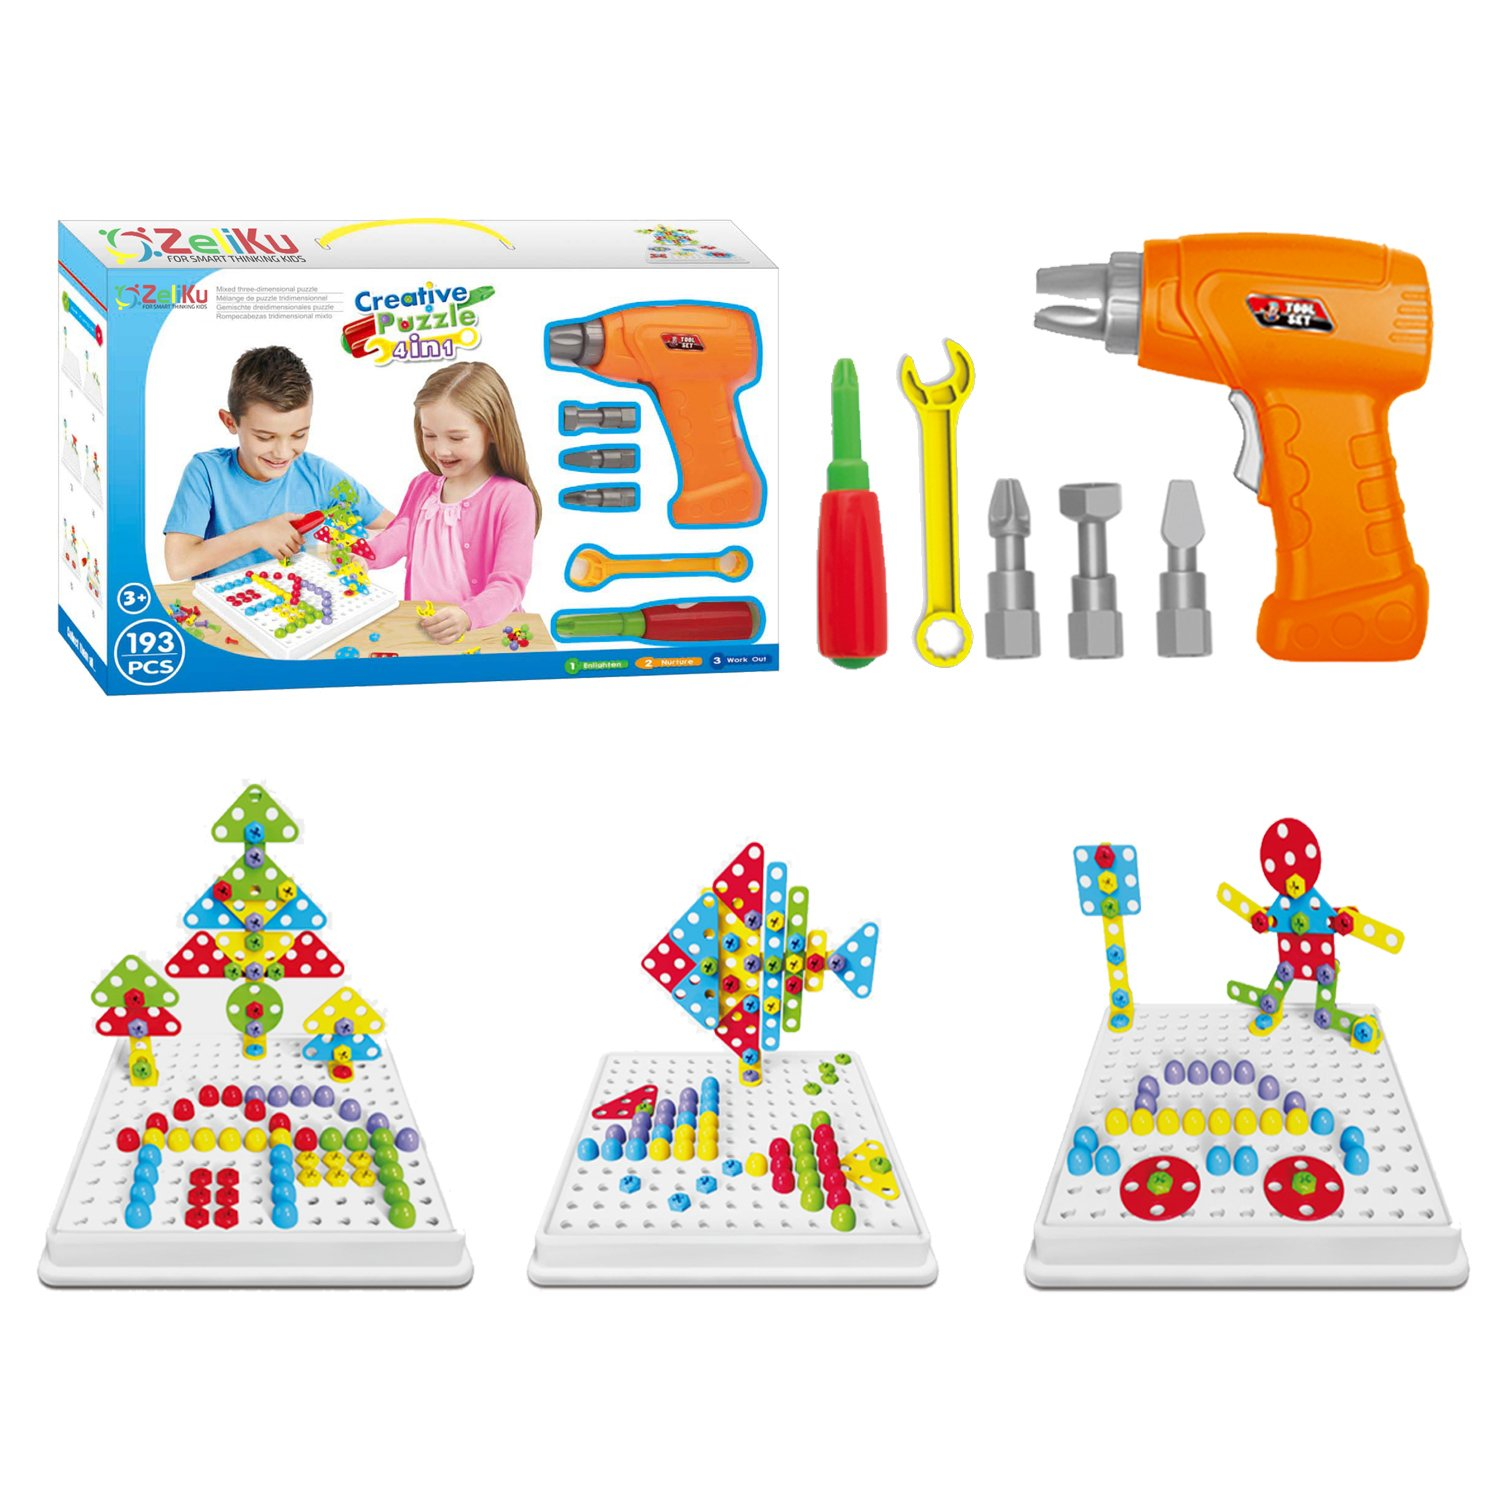 Educational Design and Drill toy Building toys set - 193 Pcs with board game STEM Learning Construction creative playset for 3, 4, 5+ Year Old Boys & Girls Best Toy Gift for Kids Ages 3yr – 6yr & up Review